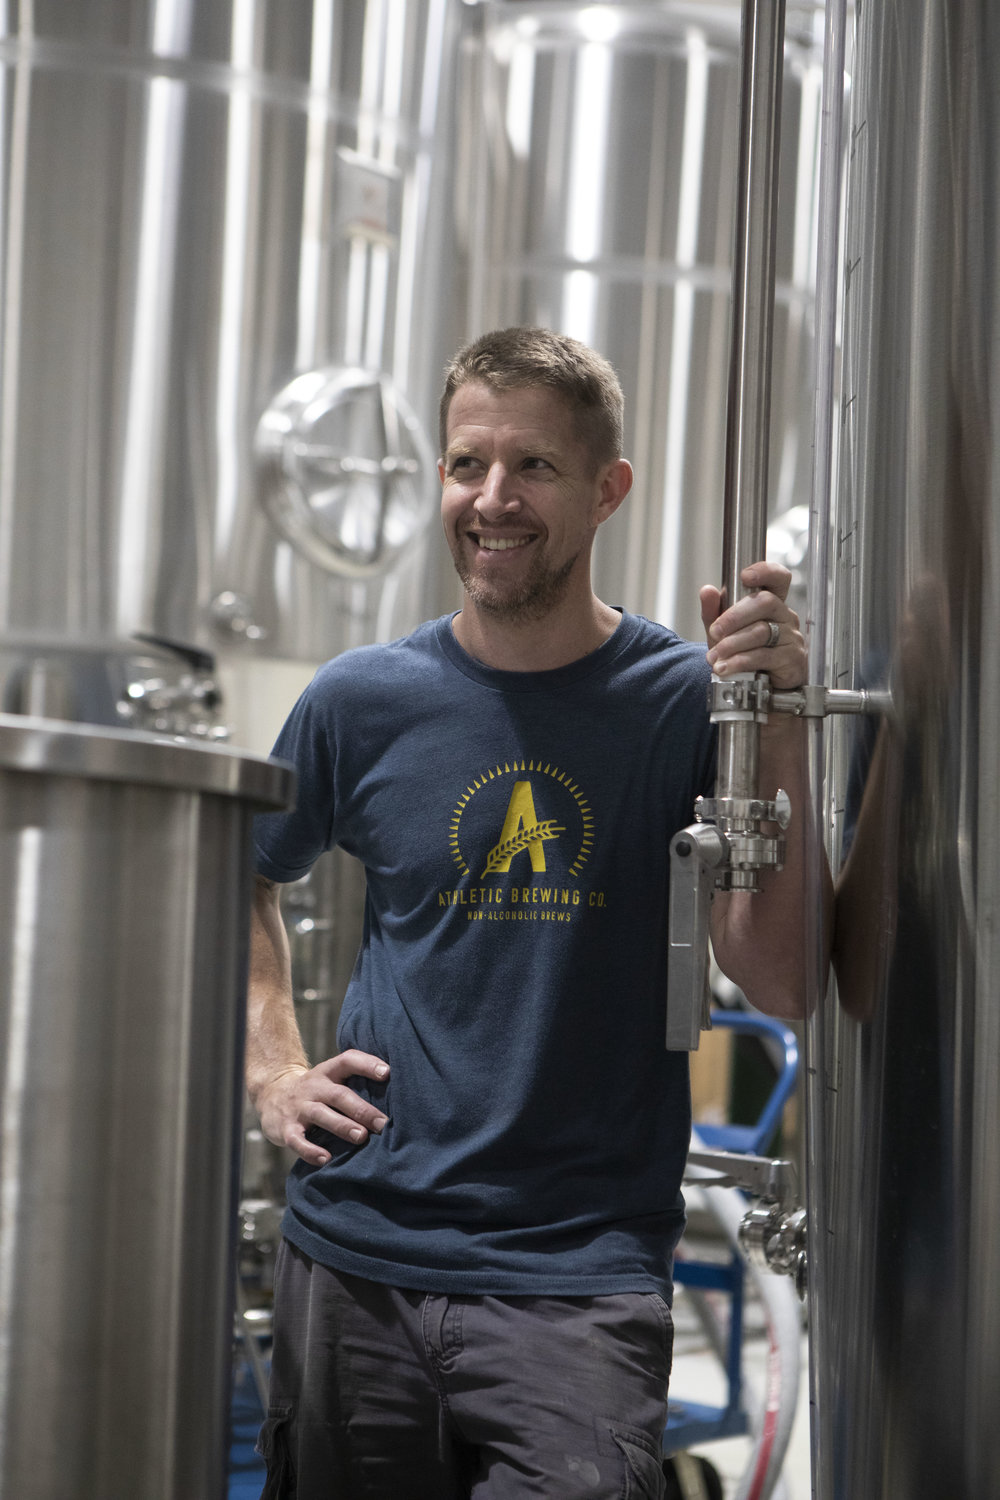 John: Head Brewer - Co-founder of Athletic and a talented head brewer who took the leap from a great brewpub in Santa Fe (where he was highly awarded) to take on the intellectual challenge of solving non-alcoholic beer. John's palette is the basis for all recipe decisions.